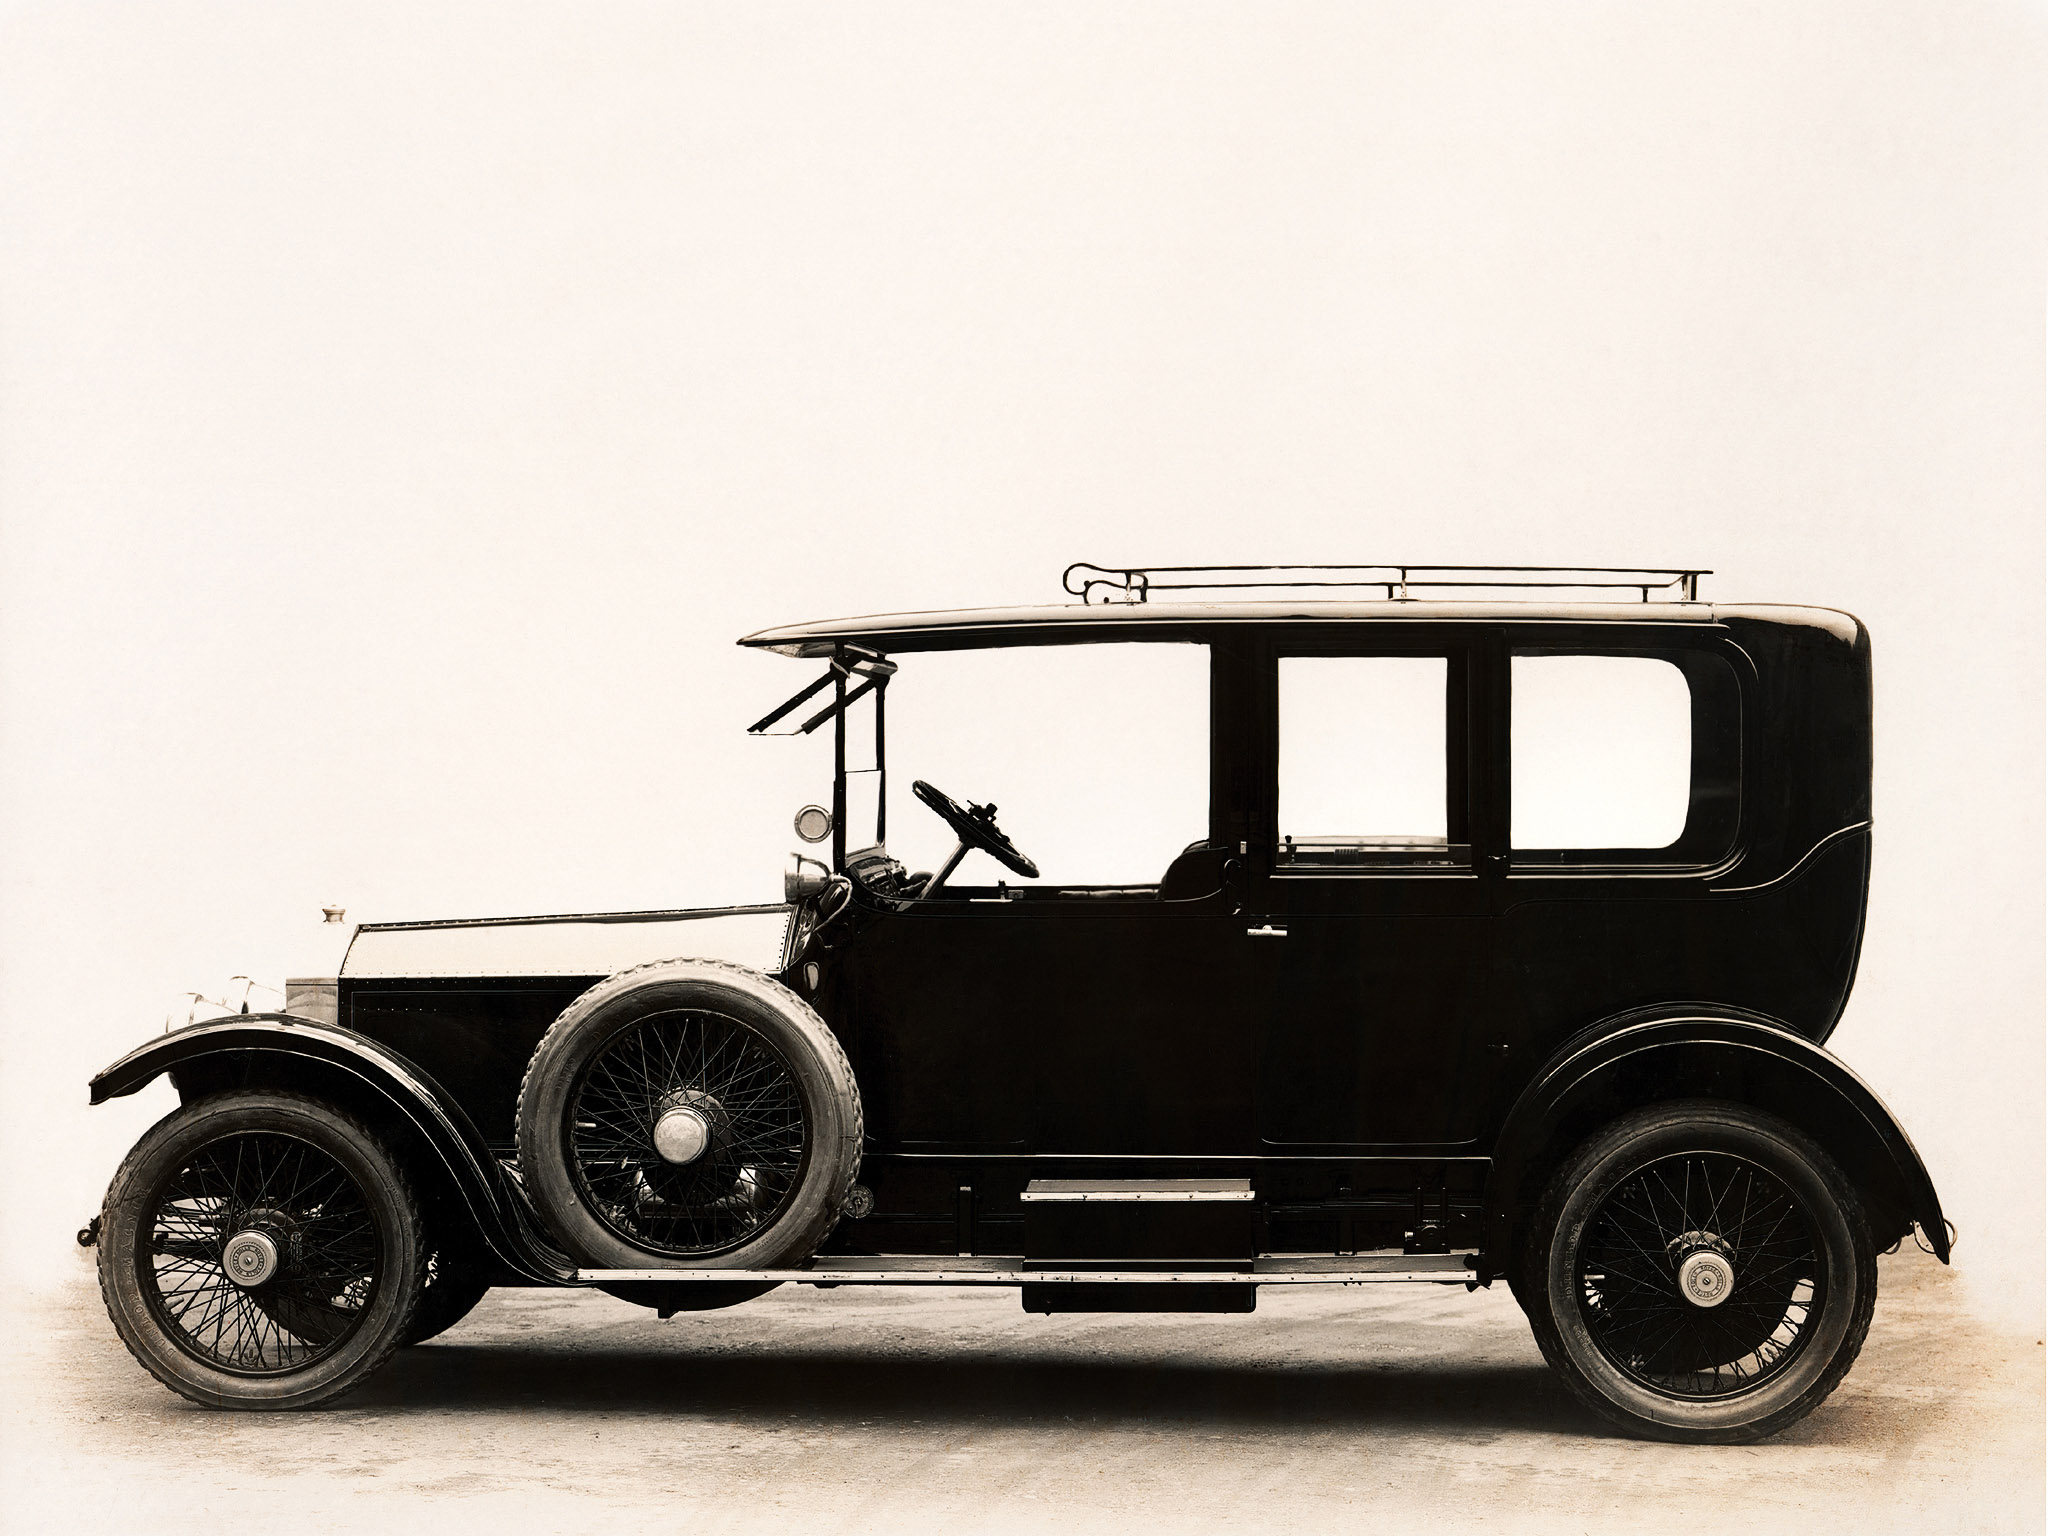 Rolls Royce Model 4050 Silver Ghost Tourer